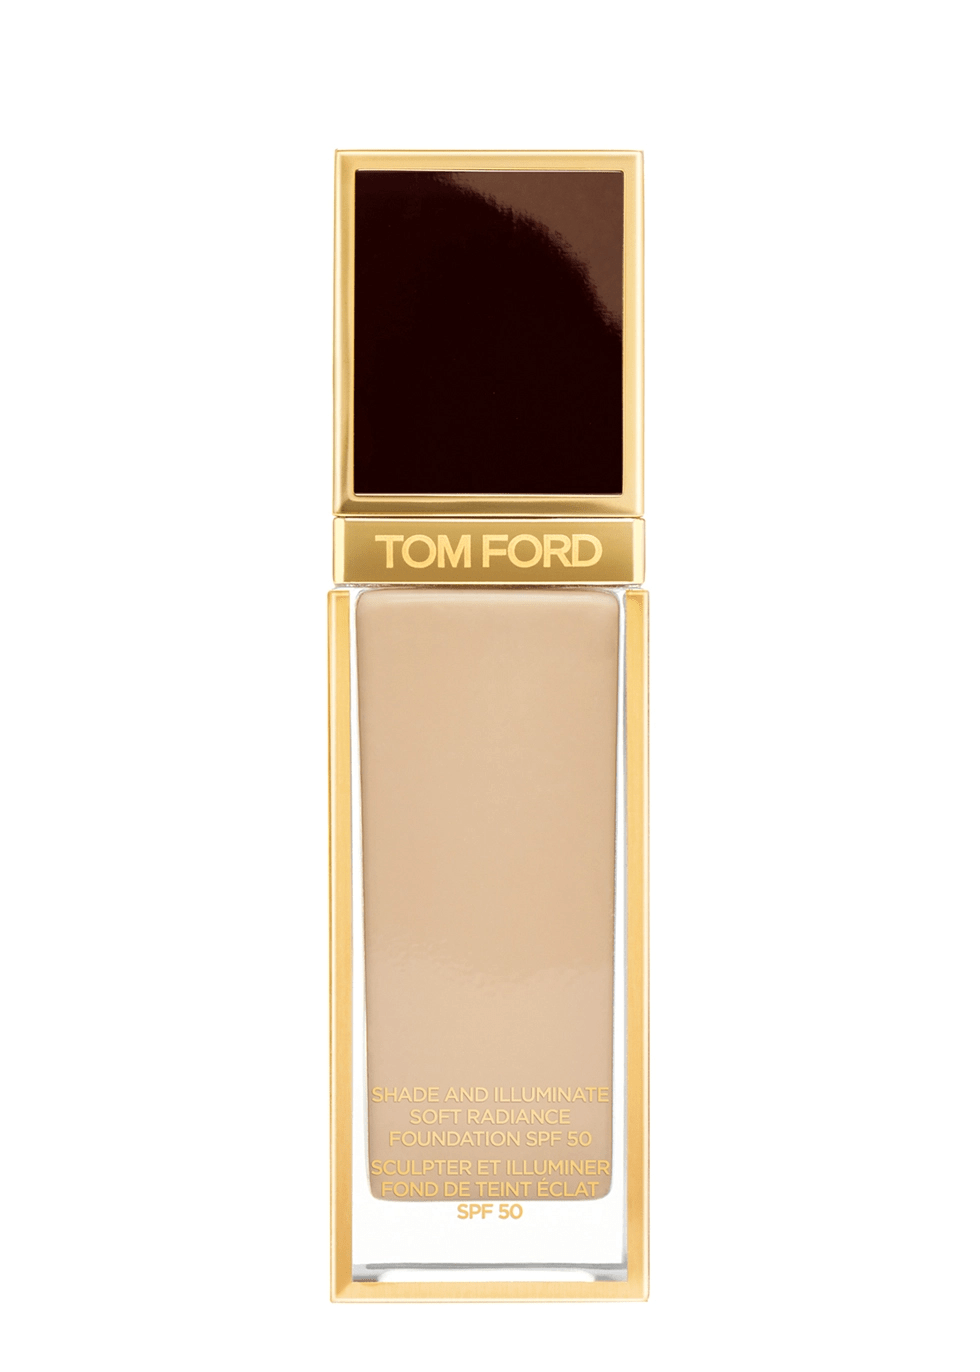 Tom Ford Shade and Illuminate Soft Radiance Foundation SPF 50, foundation, London Loves Beauty